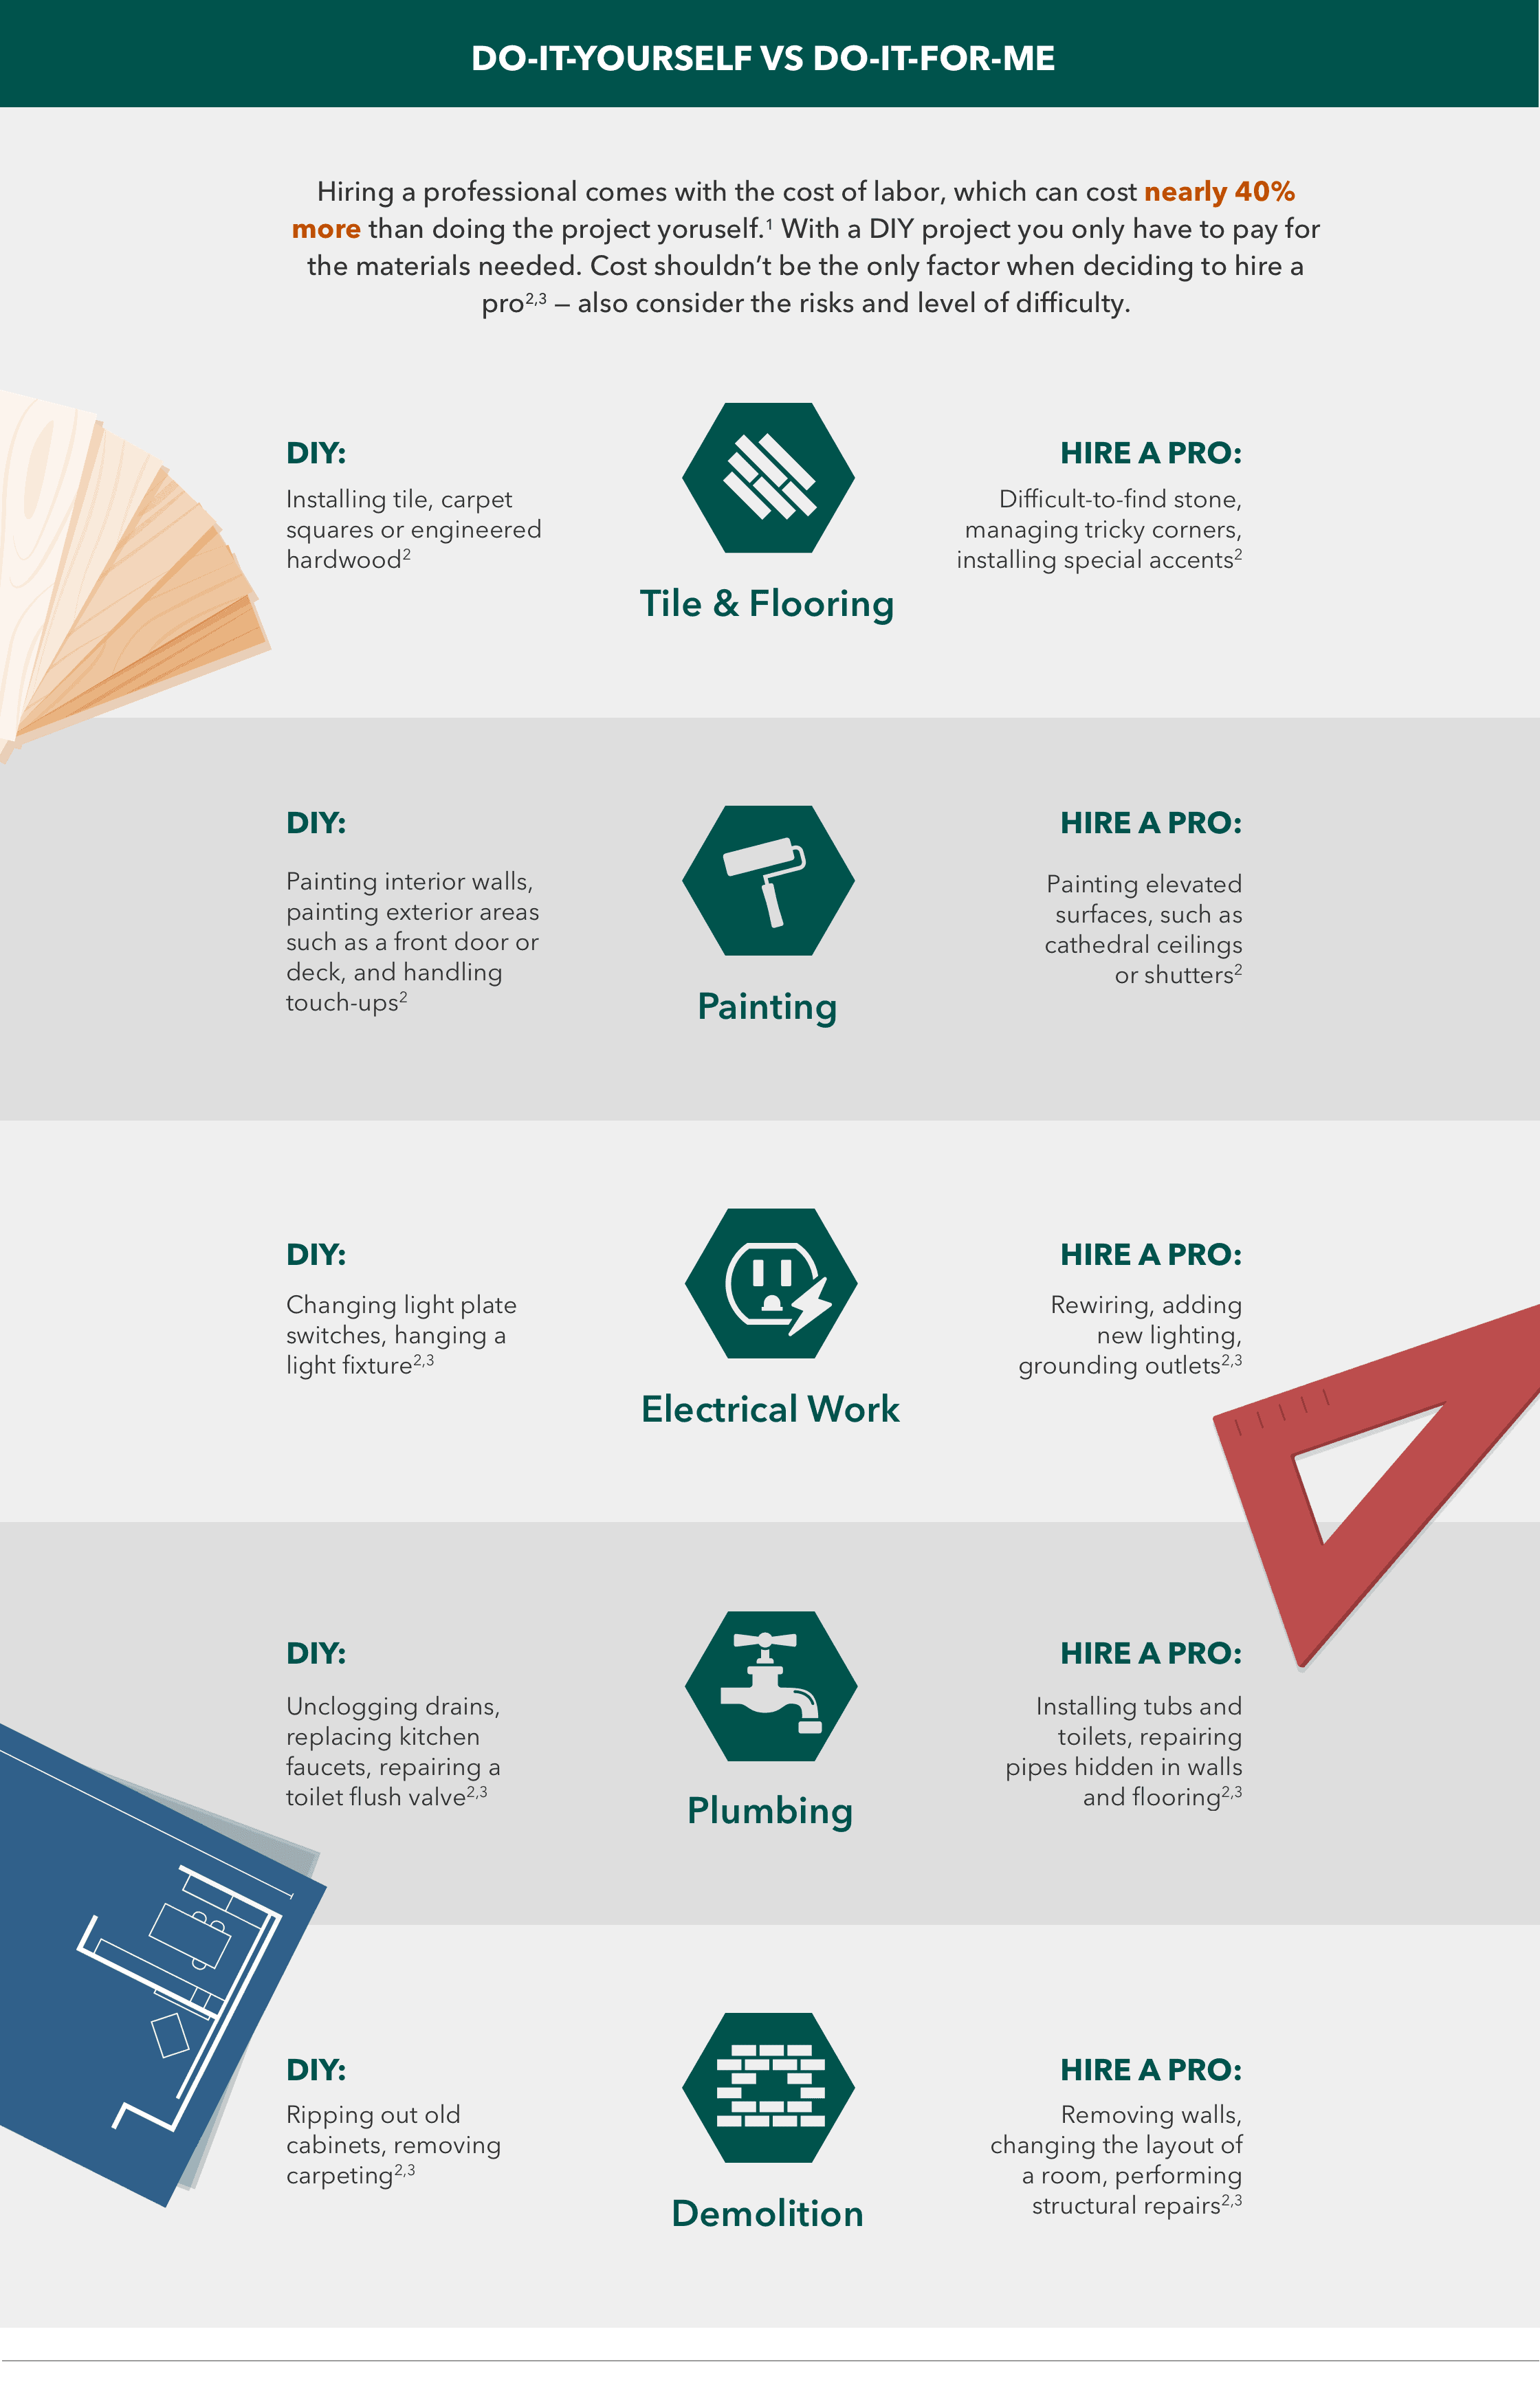 diy or hire a pro infographic